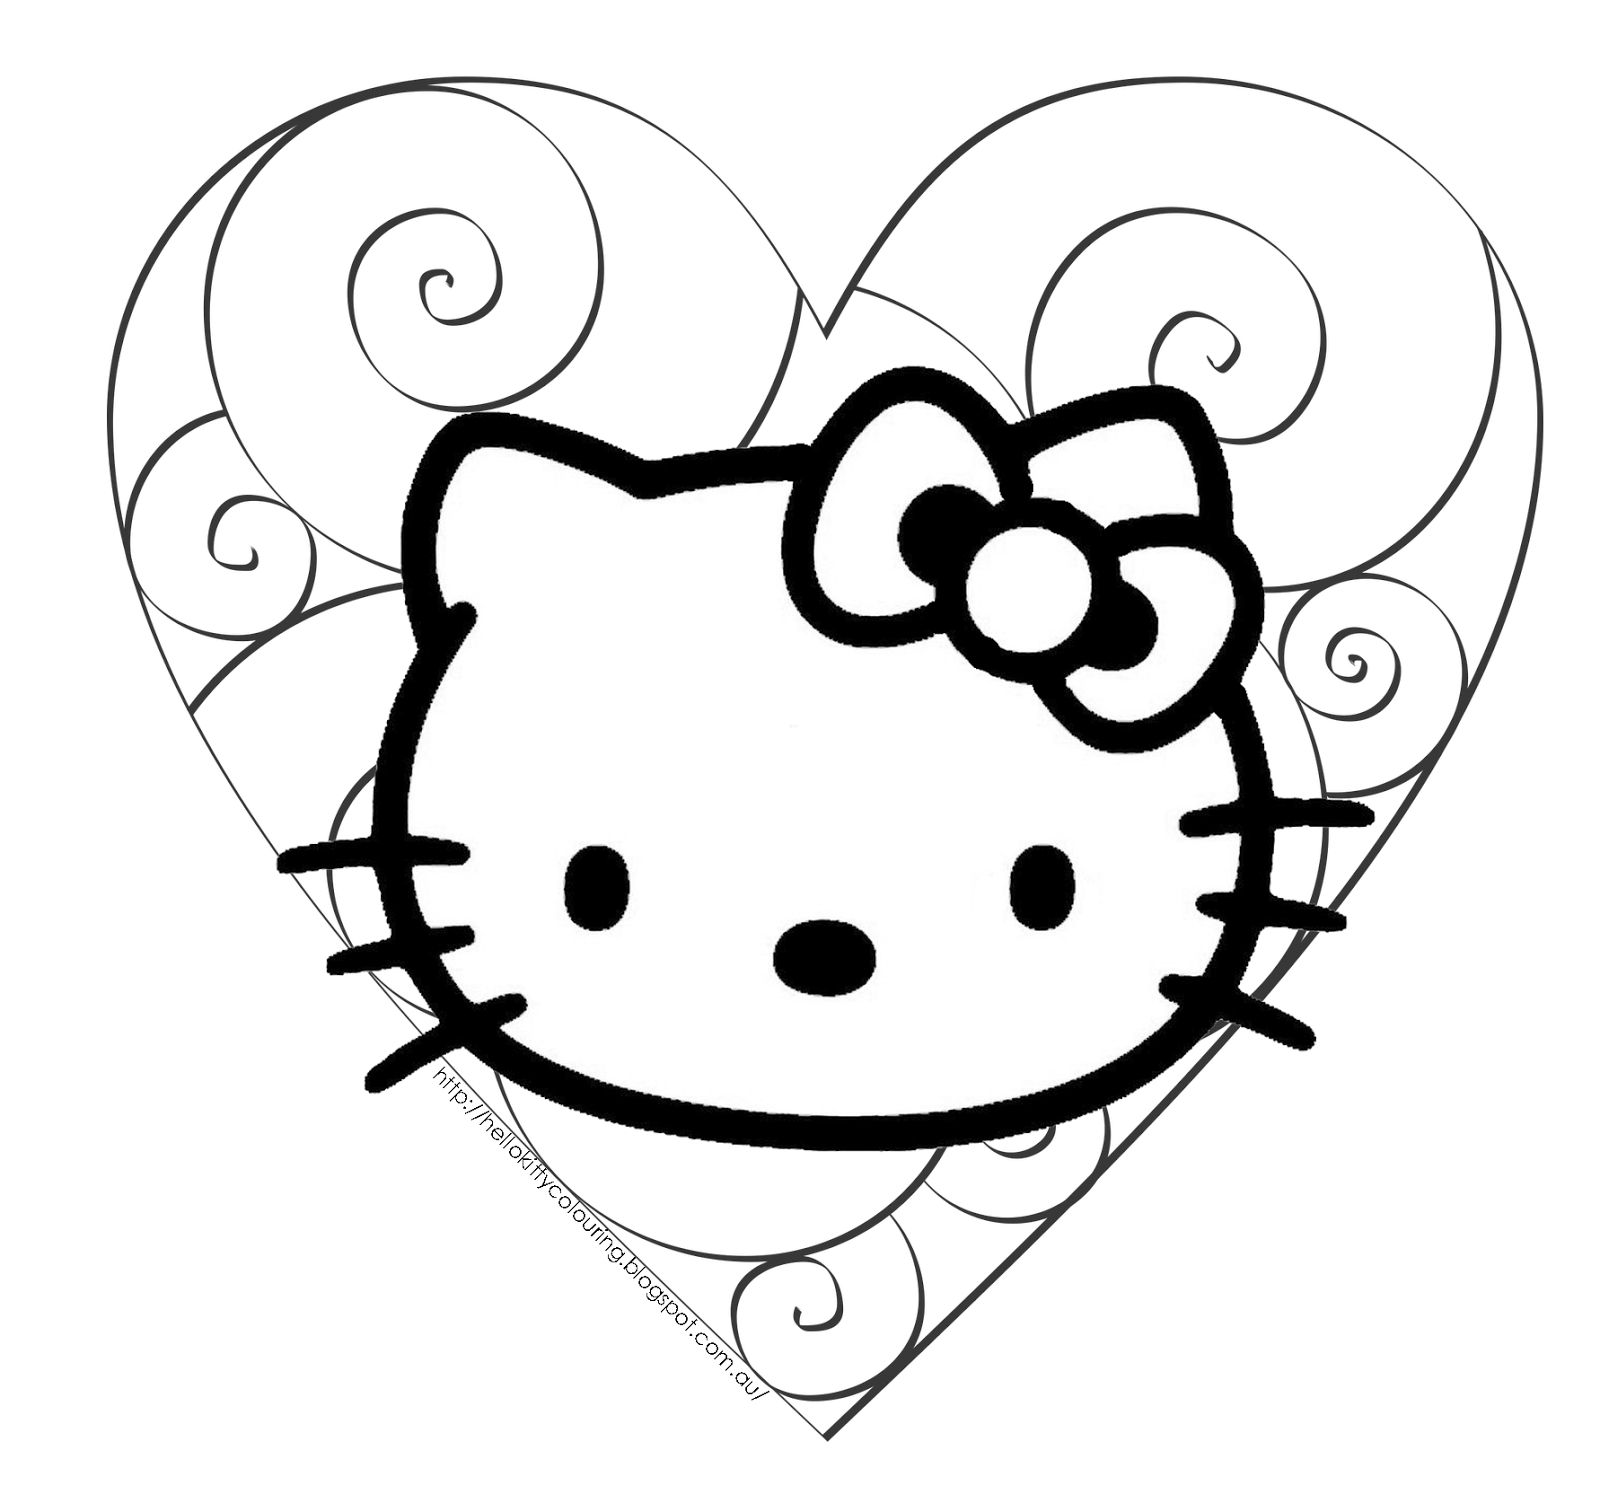 kitty cat colouring pages page 2 baby cat coloring pages coloring - Kitty Cat Coloring Pages